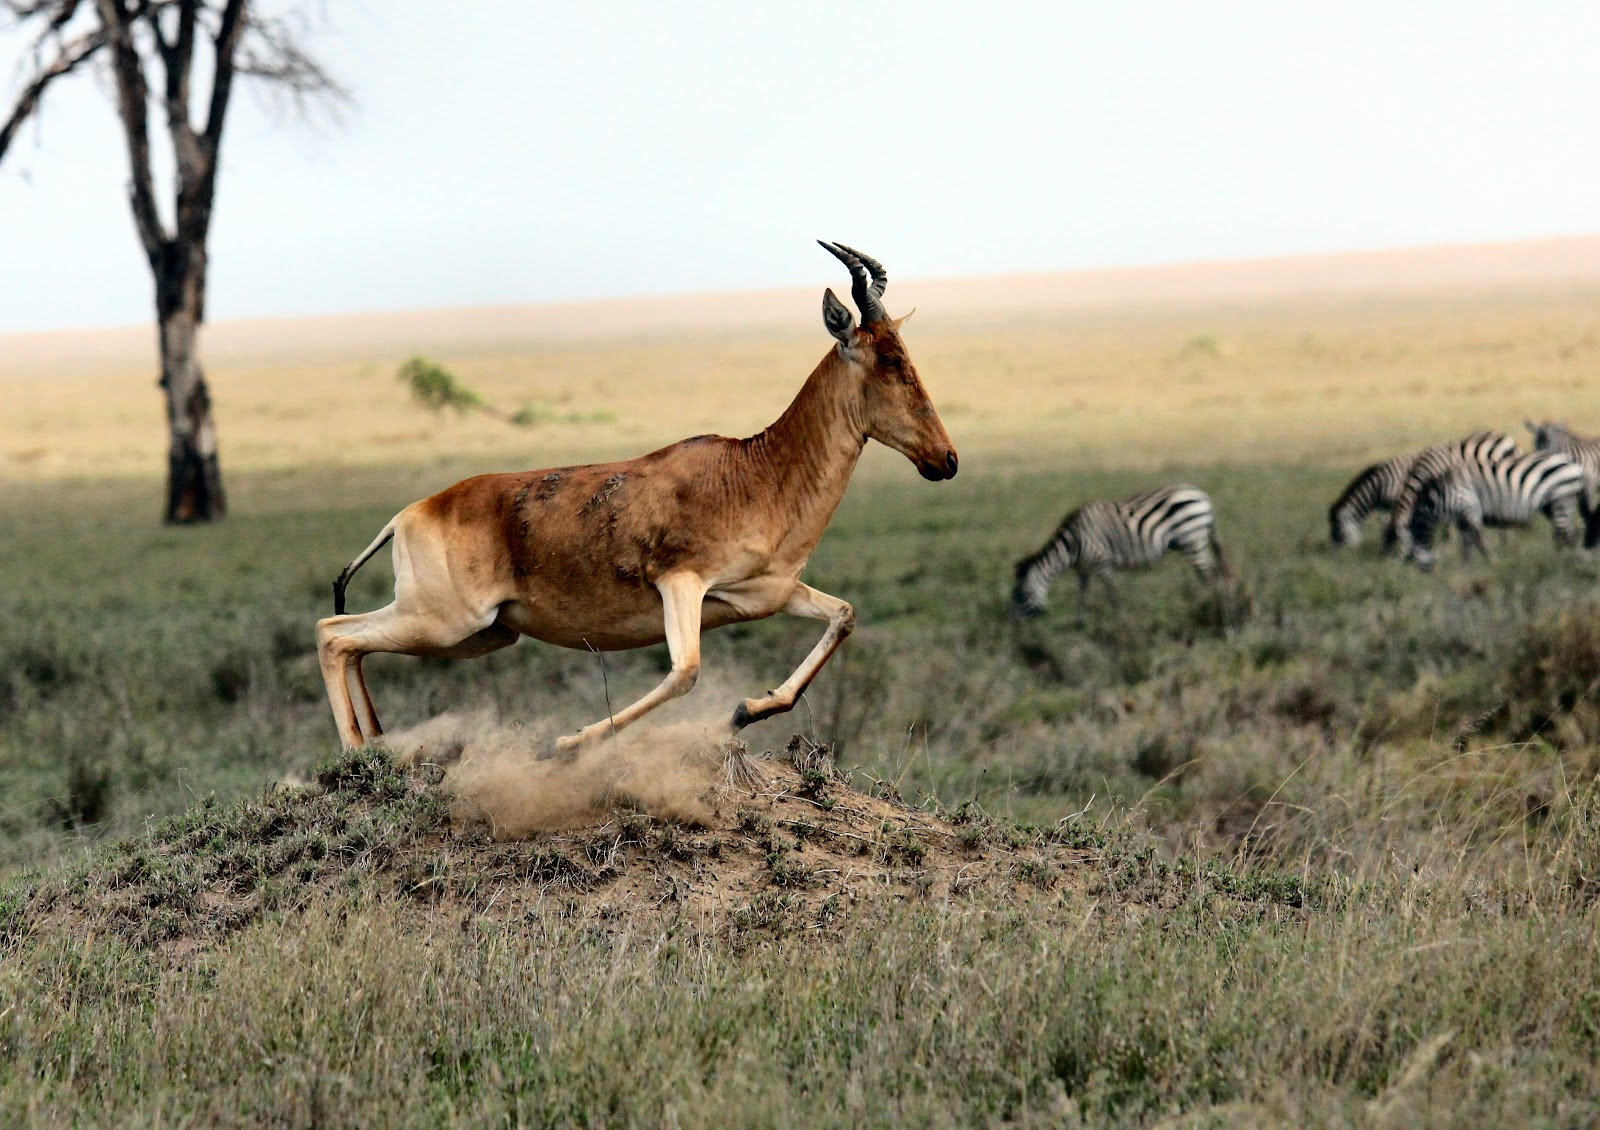 Gazelle running through the savannah with grazing zebra in the background, slightly blurred